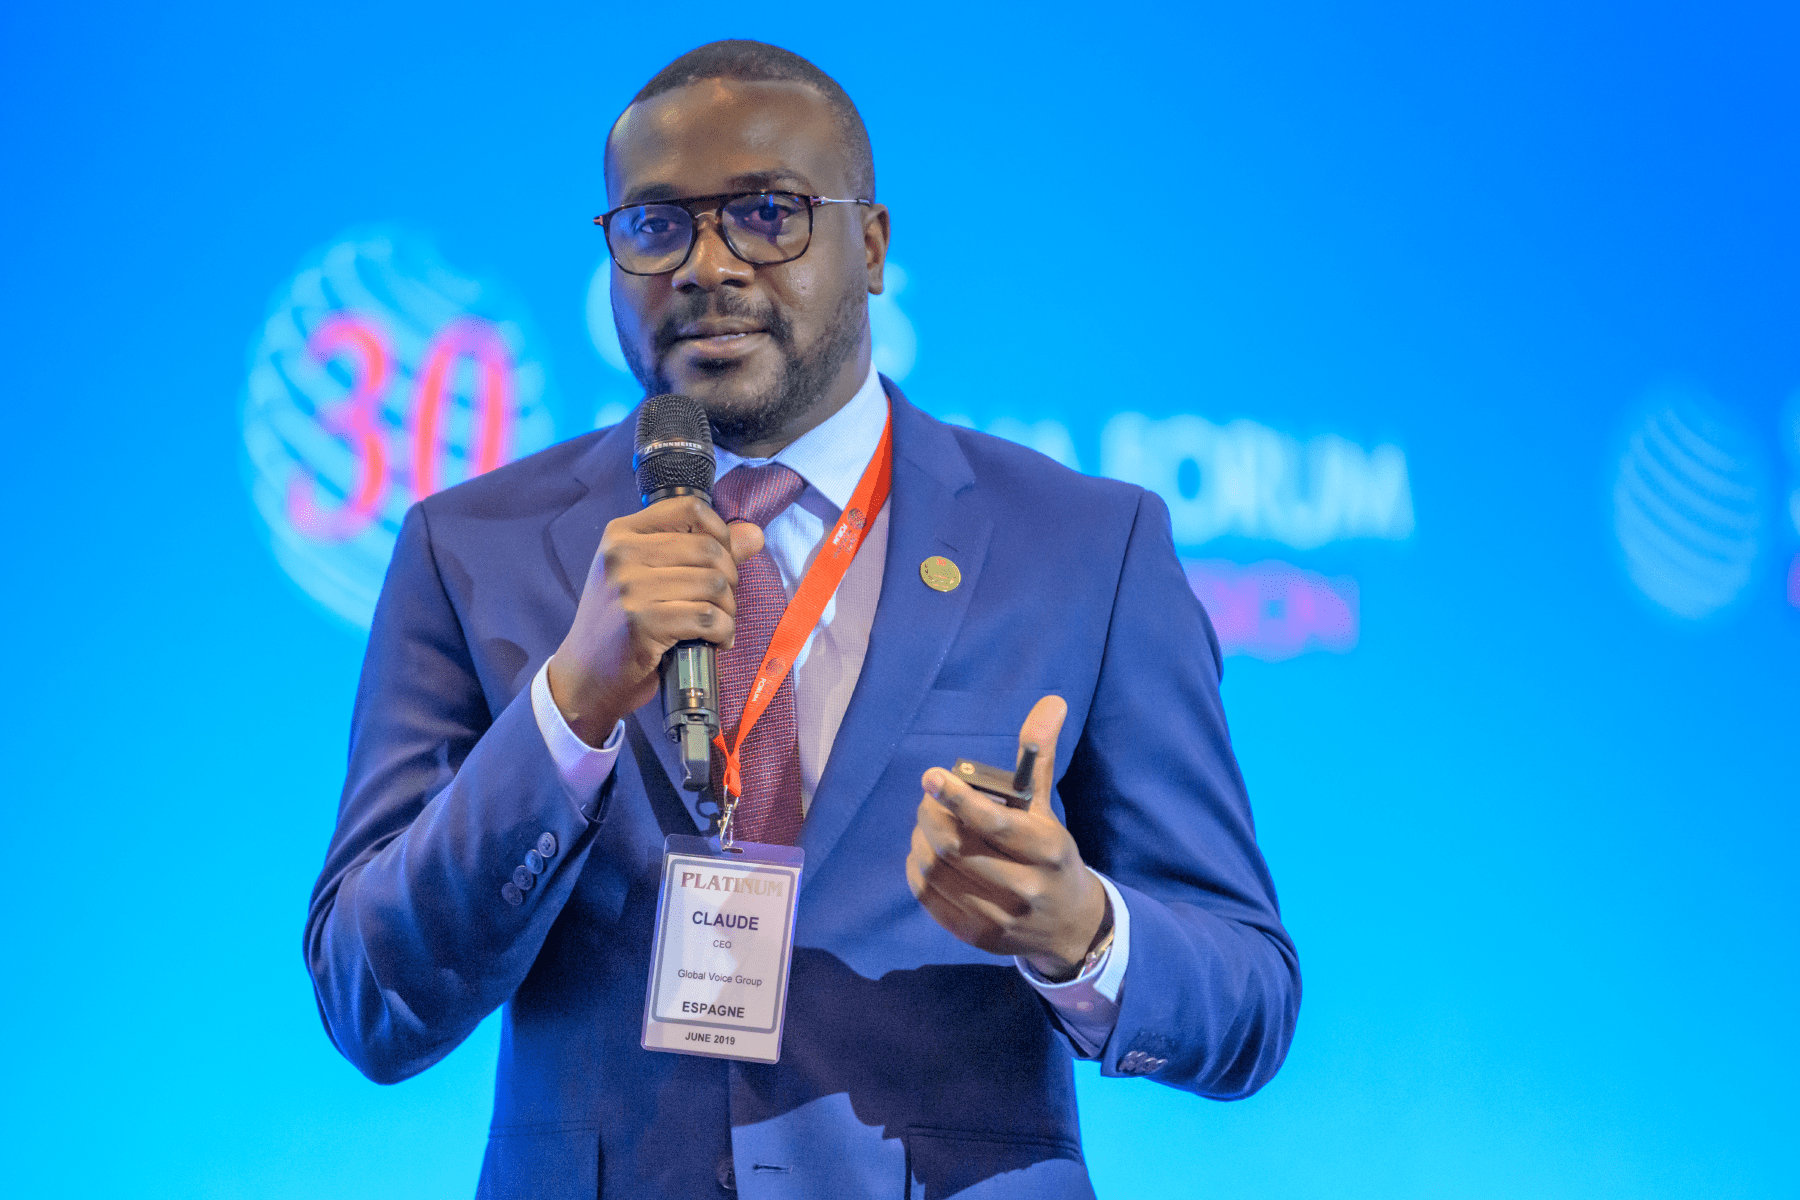 James Claude Speaking As A Panelist At The Crans Montana Forum 2019